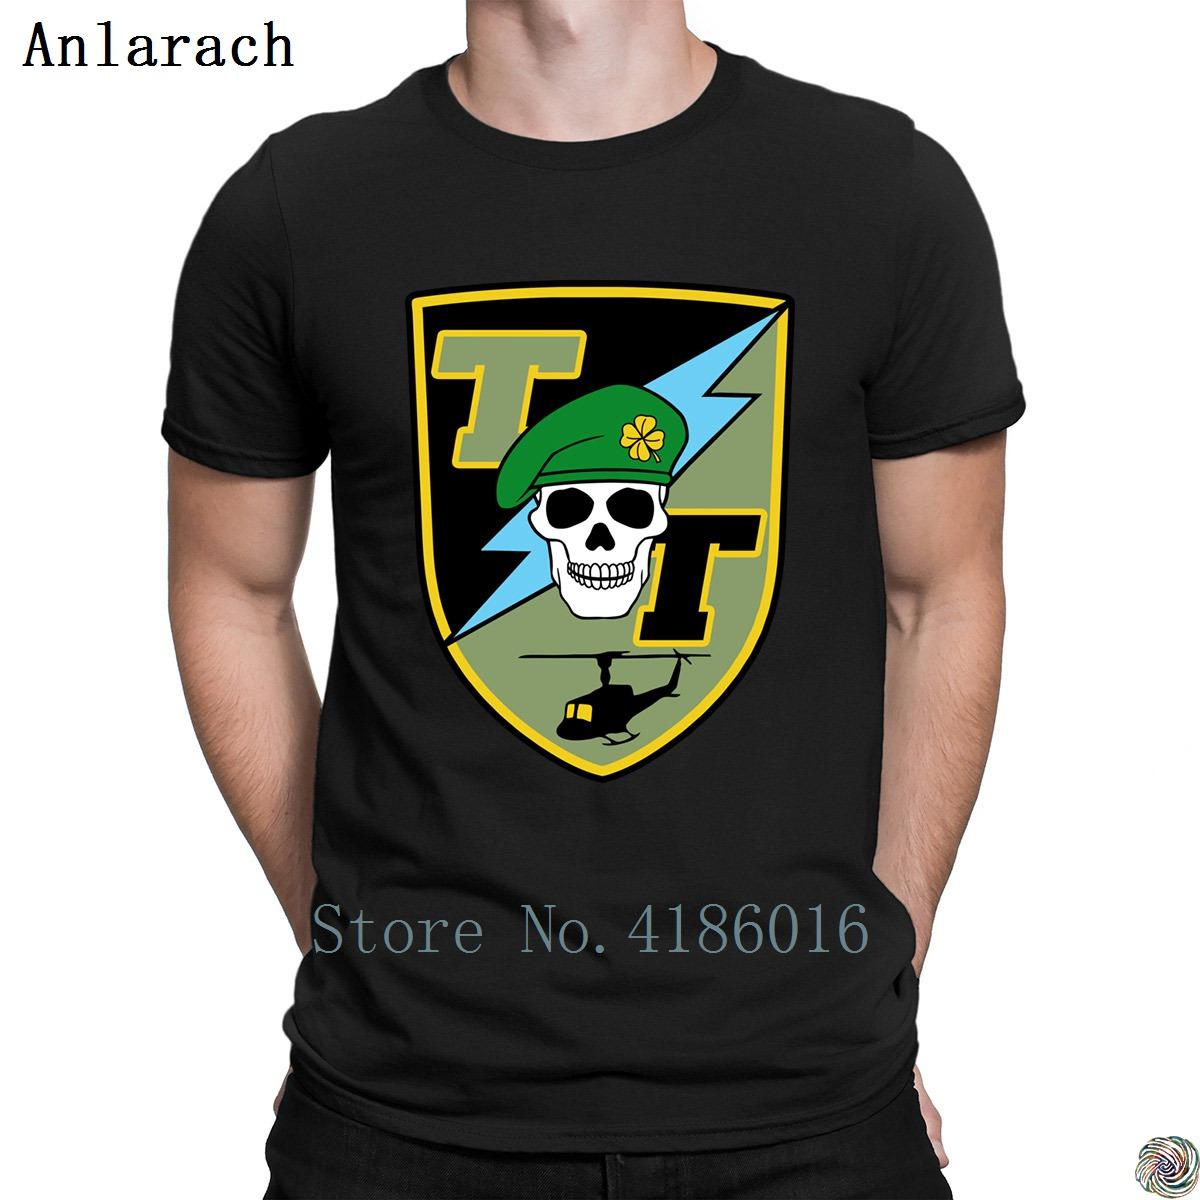 Tropic army patch t-shirt 2018 male Tee top create t shirt for men fun cotton simple Popular Anlarach Letters